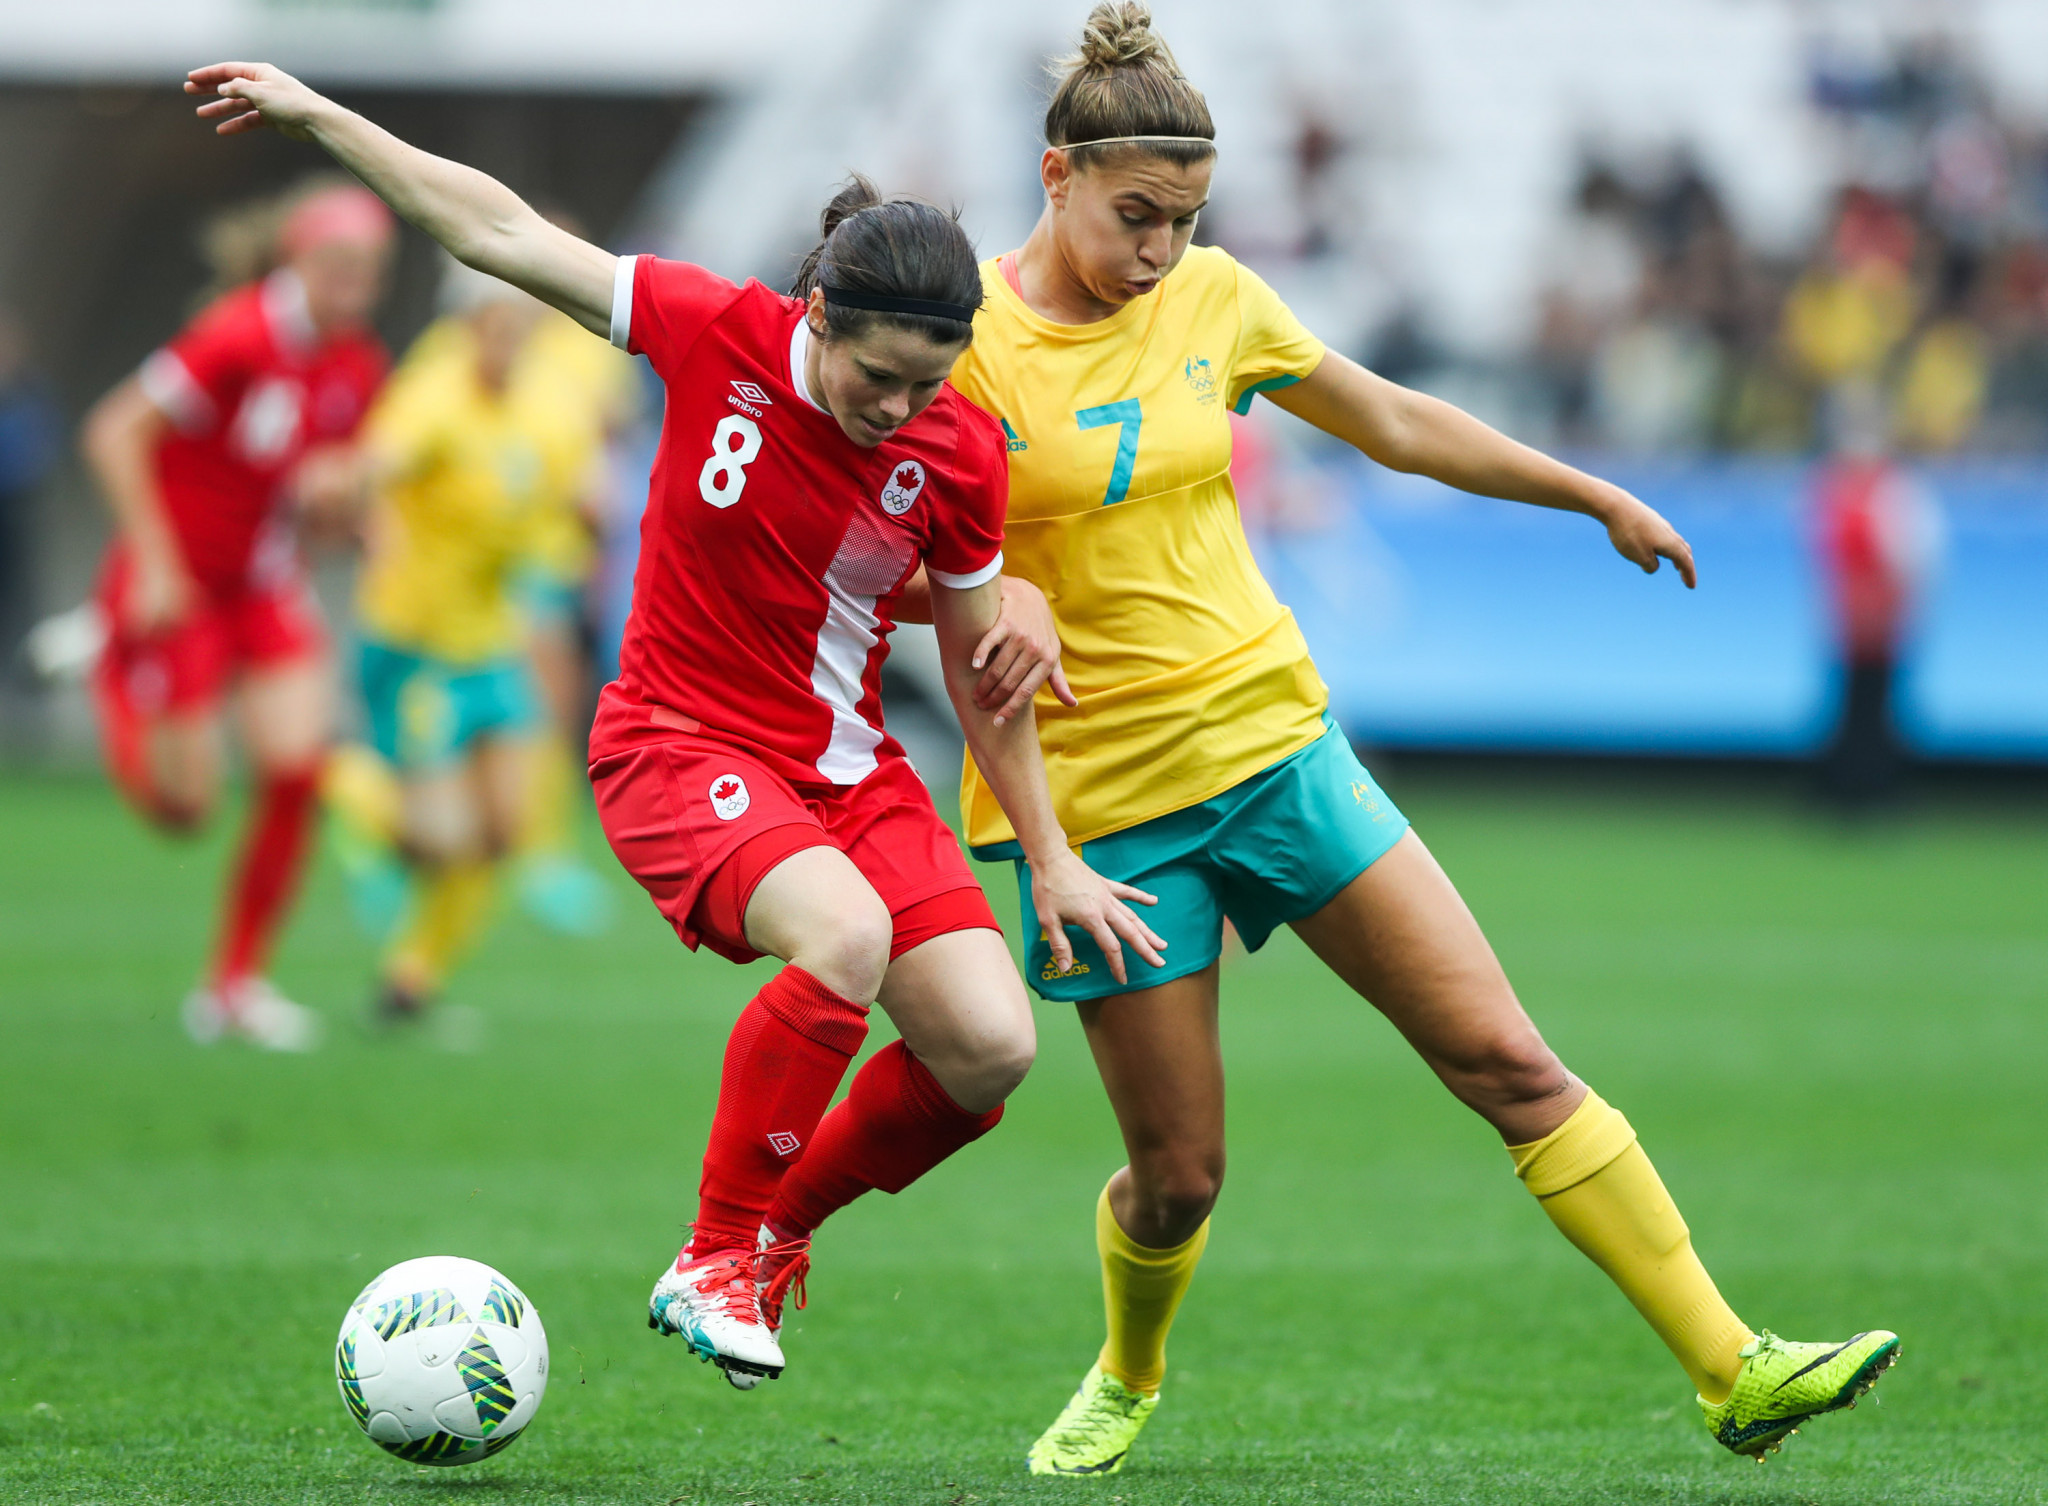 Steph Catley played for Australia at the Rio 2016 Olympic Games ©Getty Images